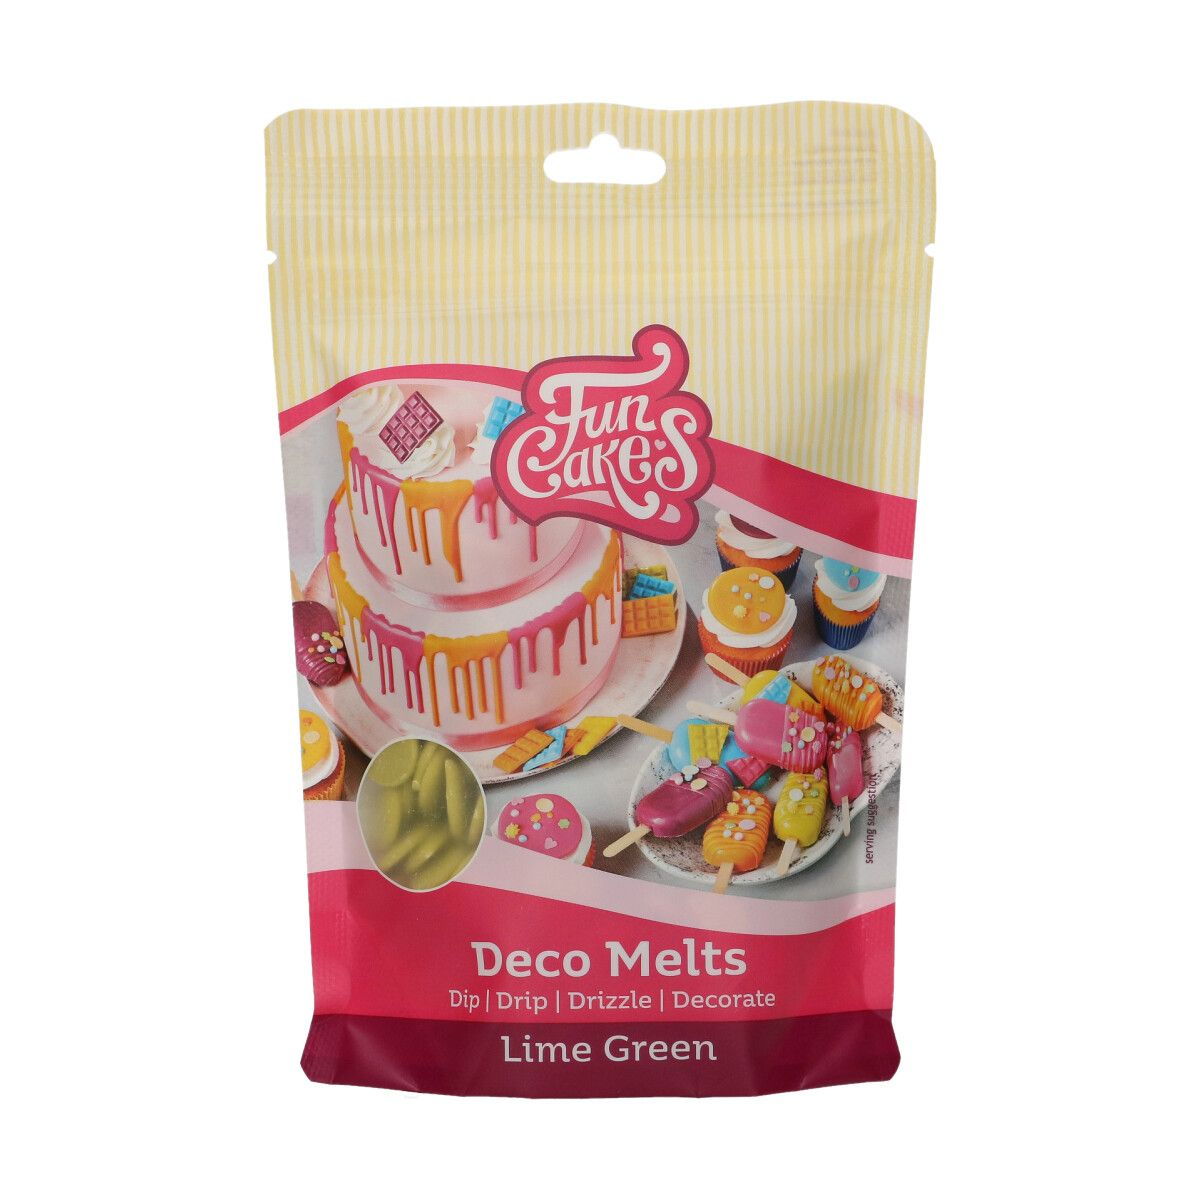 FunCakes Deco Melts -Lime Green- 250g